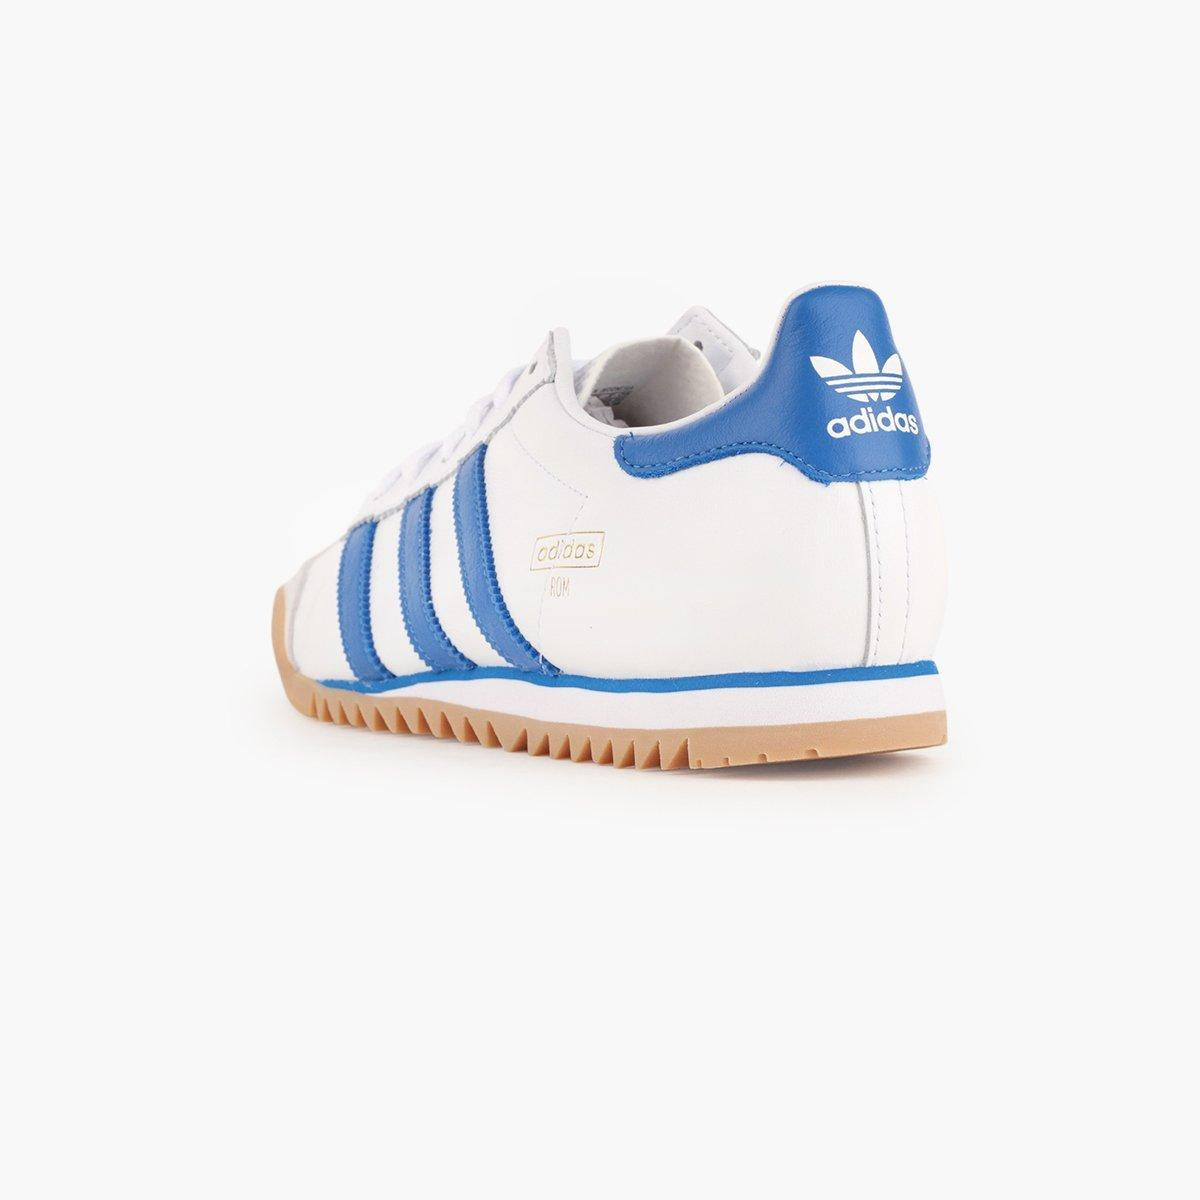 9cf780e8 adidas Originals Rom in Blue for Men - Lyst